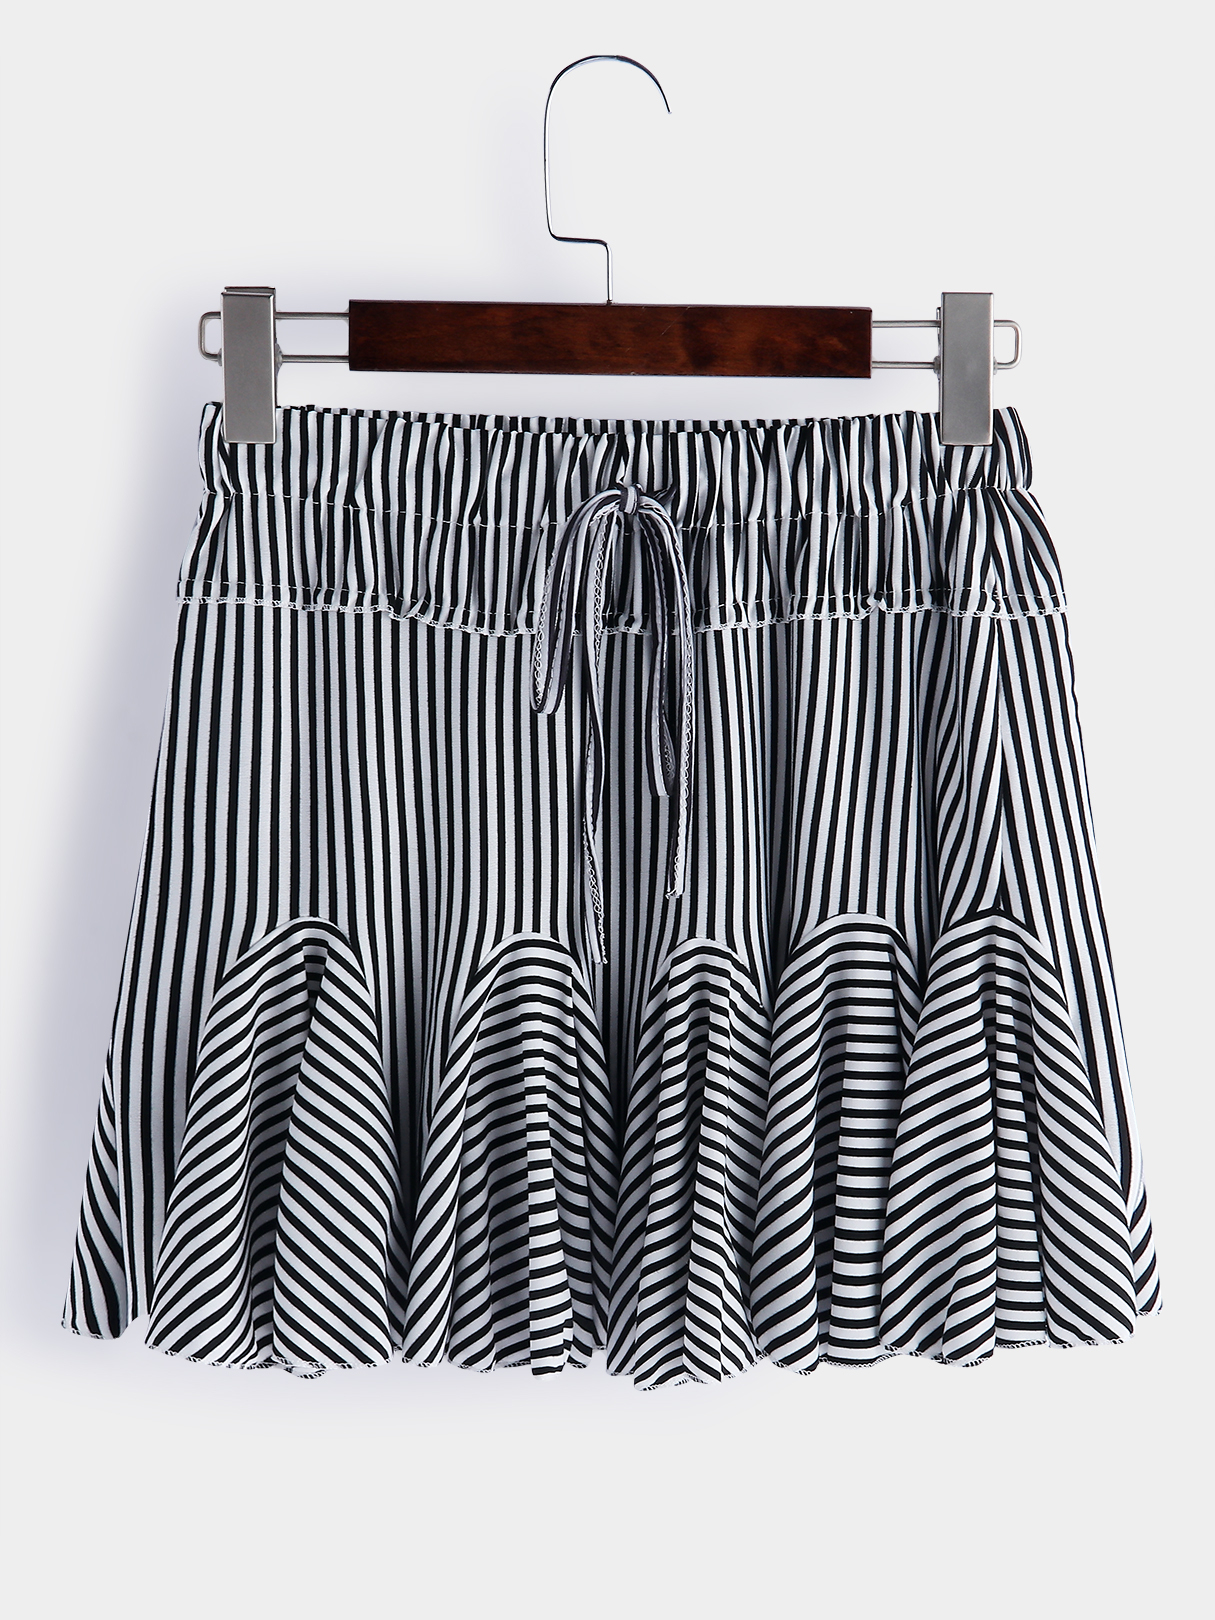 Black Lace-up Design Stripe Drawstring Waist Ruffle Hem Mini Skirts ruffle waist zip back scallop hem embroidered gingham skirt